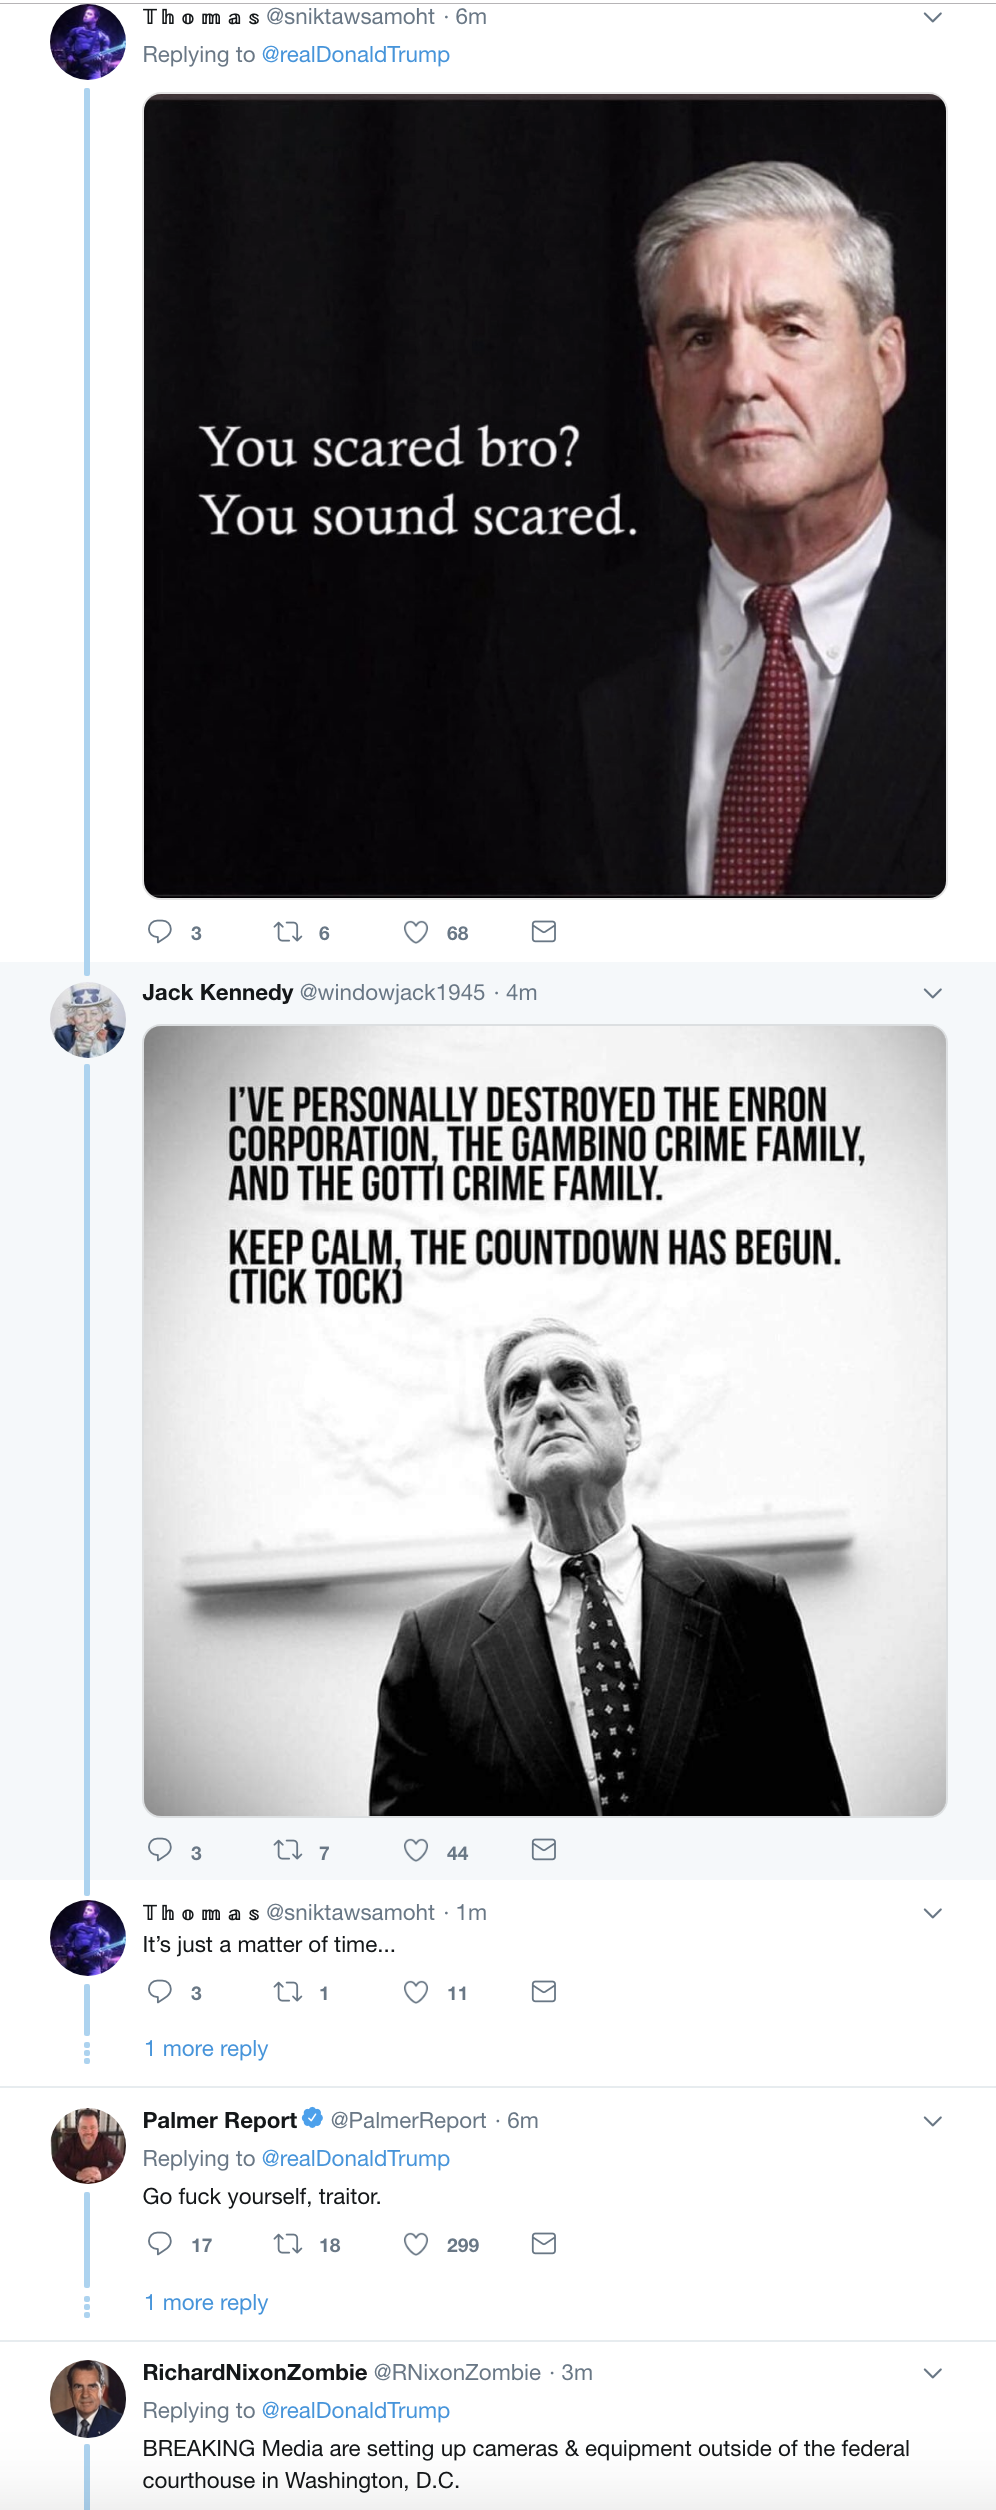 Screen-Shot-2018-11-13-at-10.44.34-AM Trump Tweets About Florida Recount In Desperate Attempt To Sway Outcome Corruption Crime Donald Trump Election 2018 Election 2020 Politics Top Stories